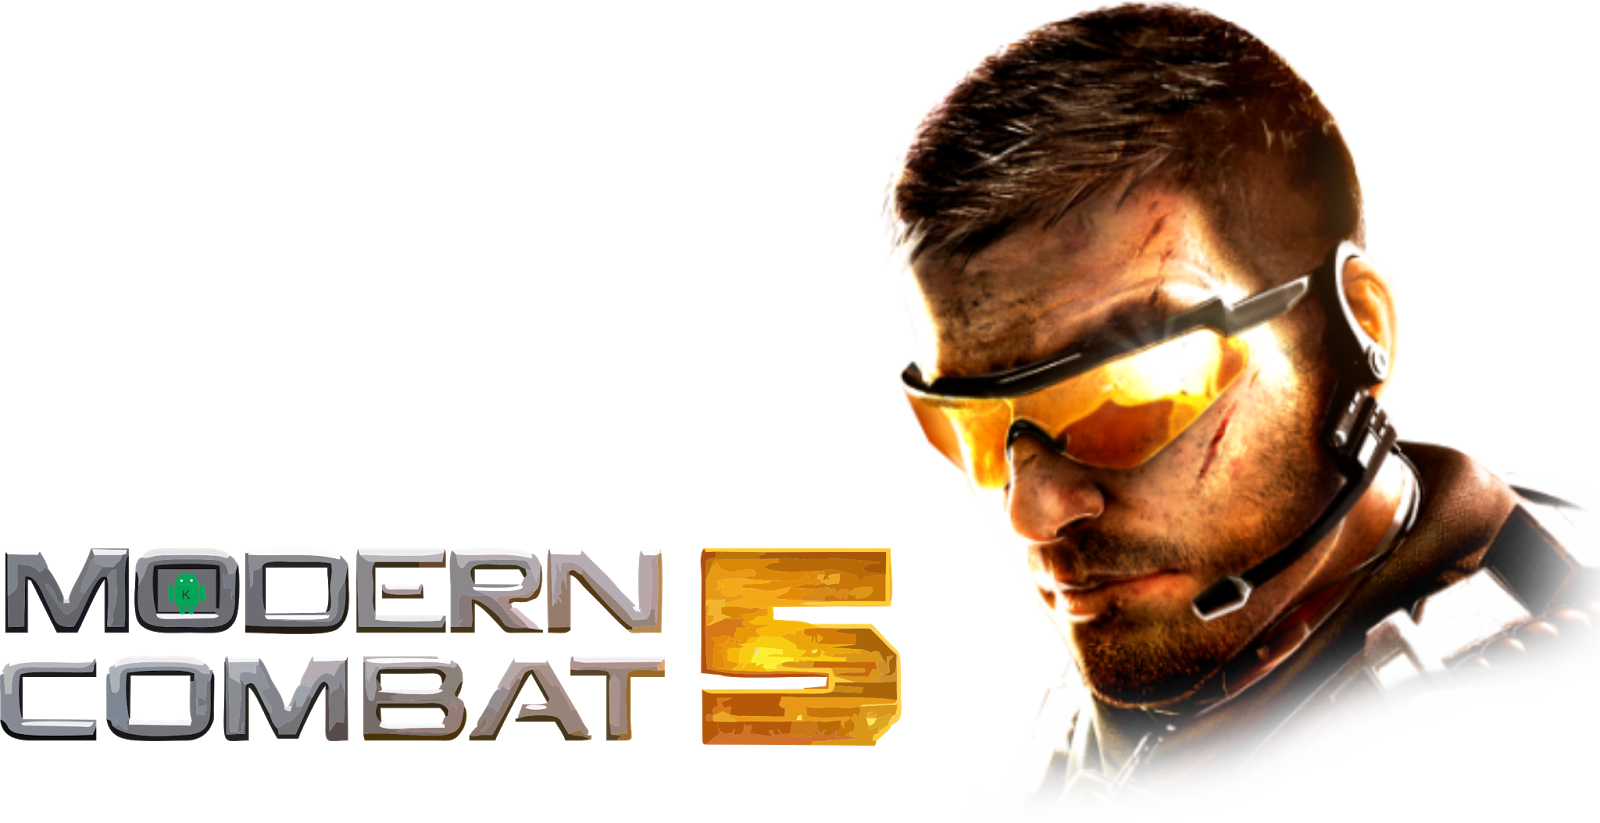 Modern combat 5 logo png. Blackout zero hour android